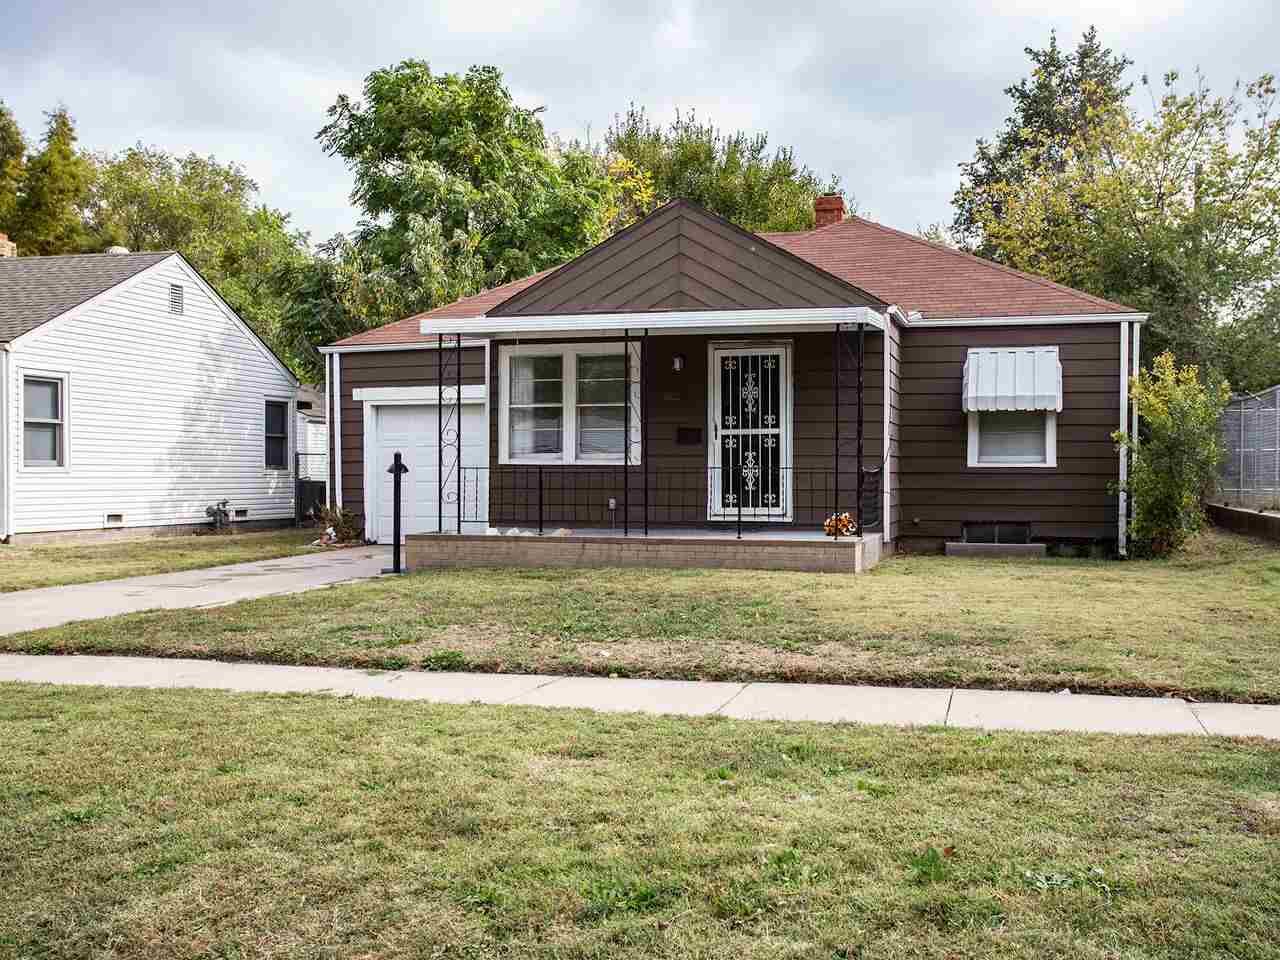 For Sale: 1948 S Topeka Ave., Wichita KS